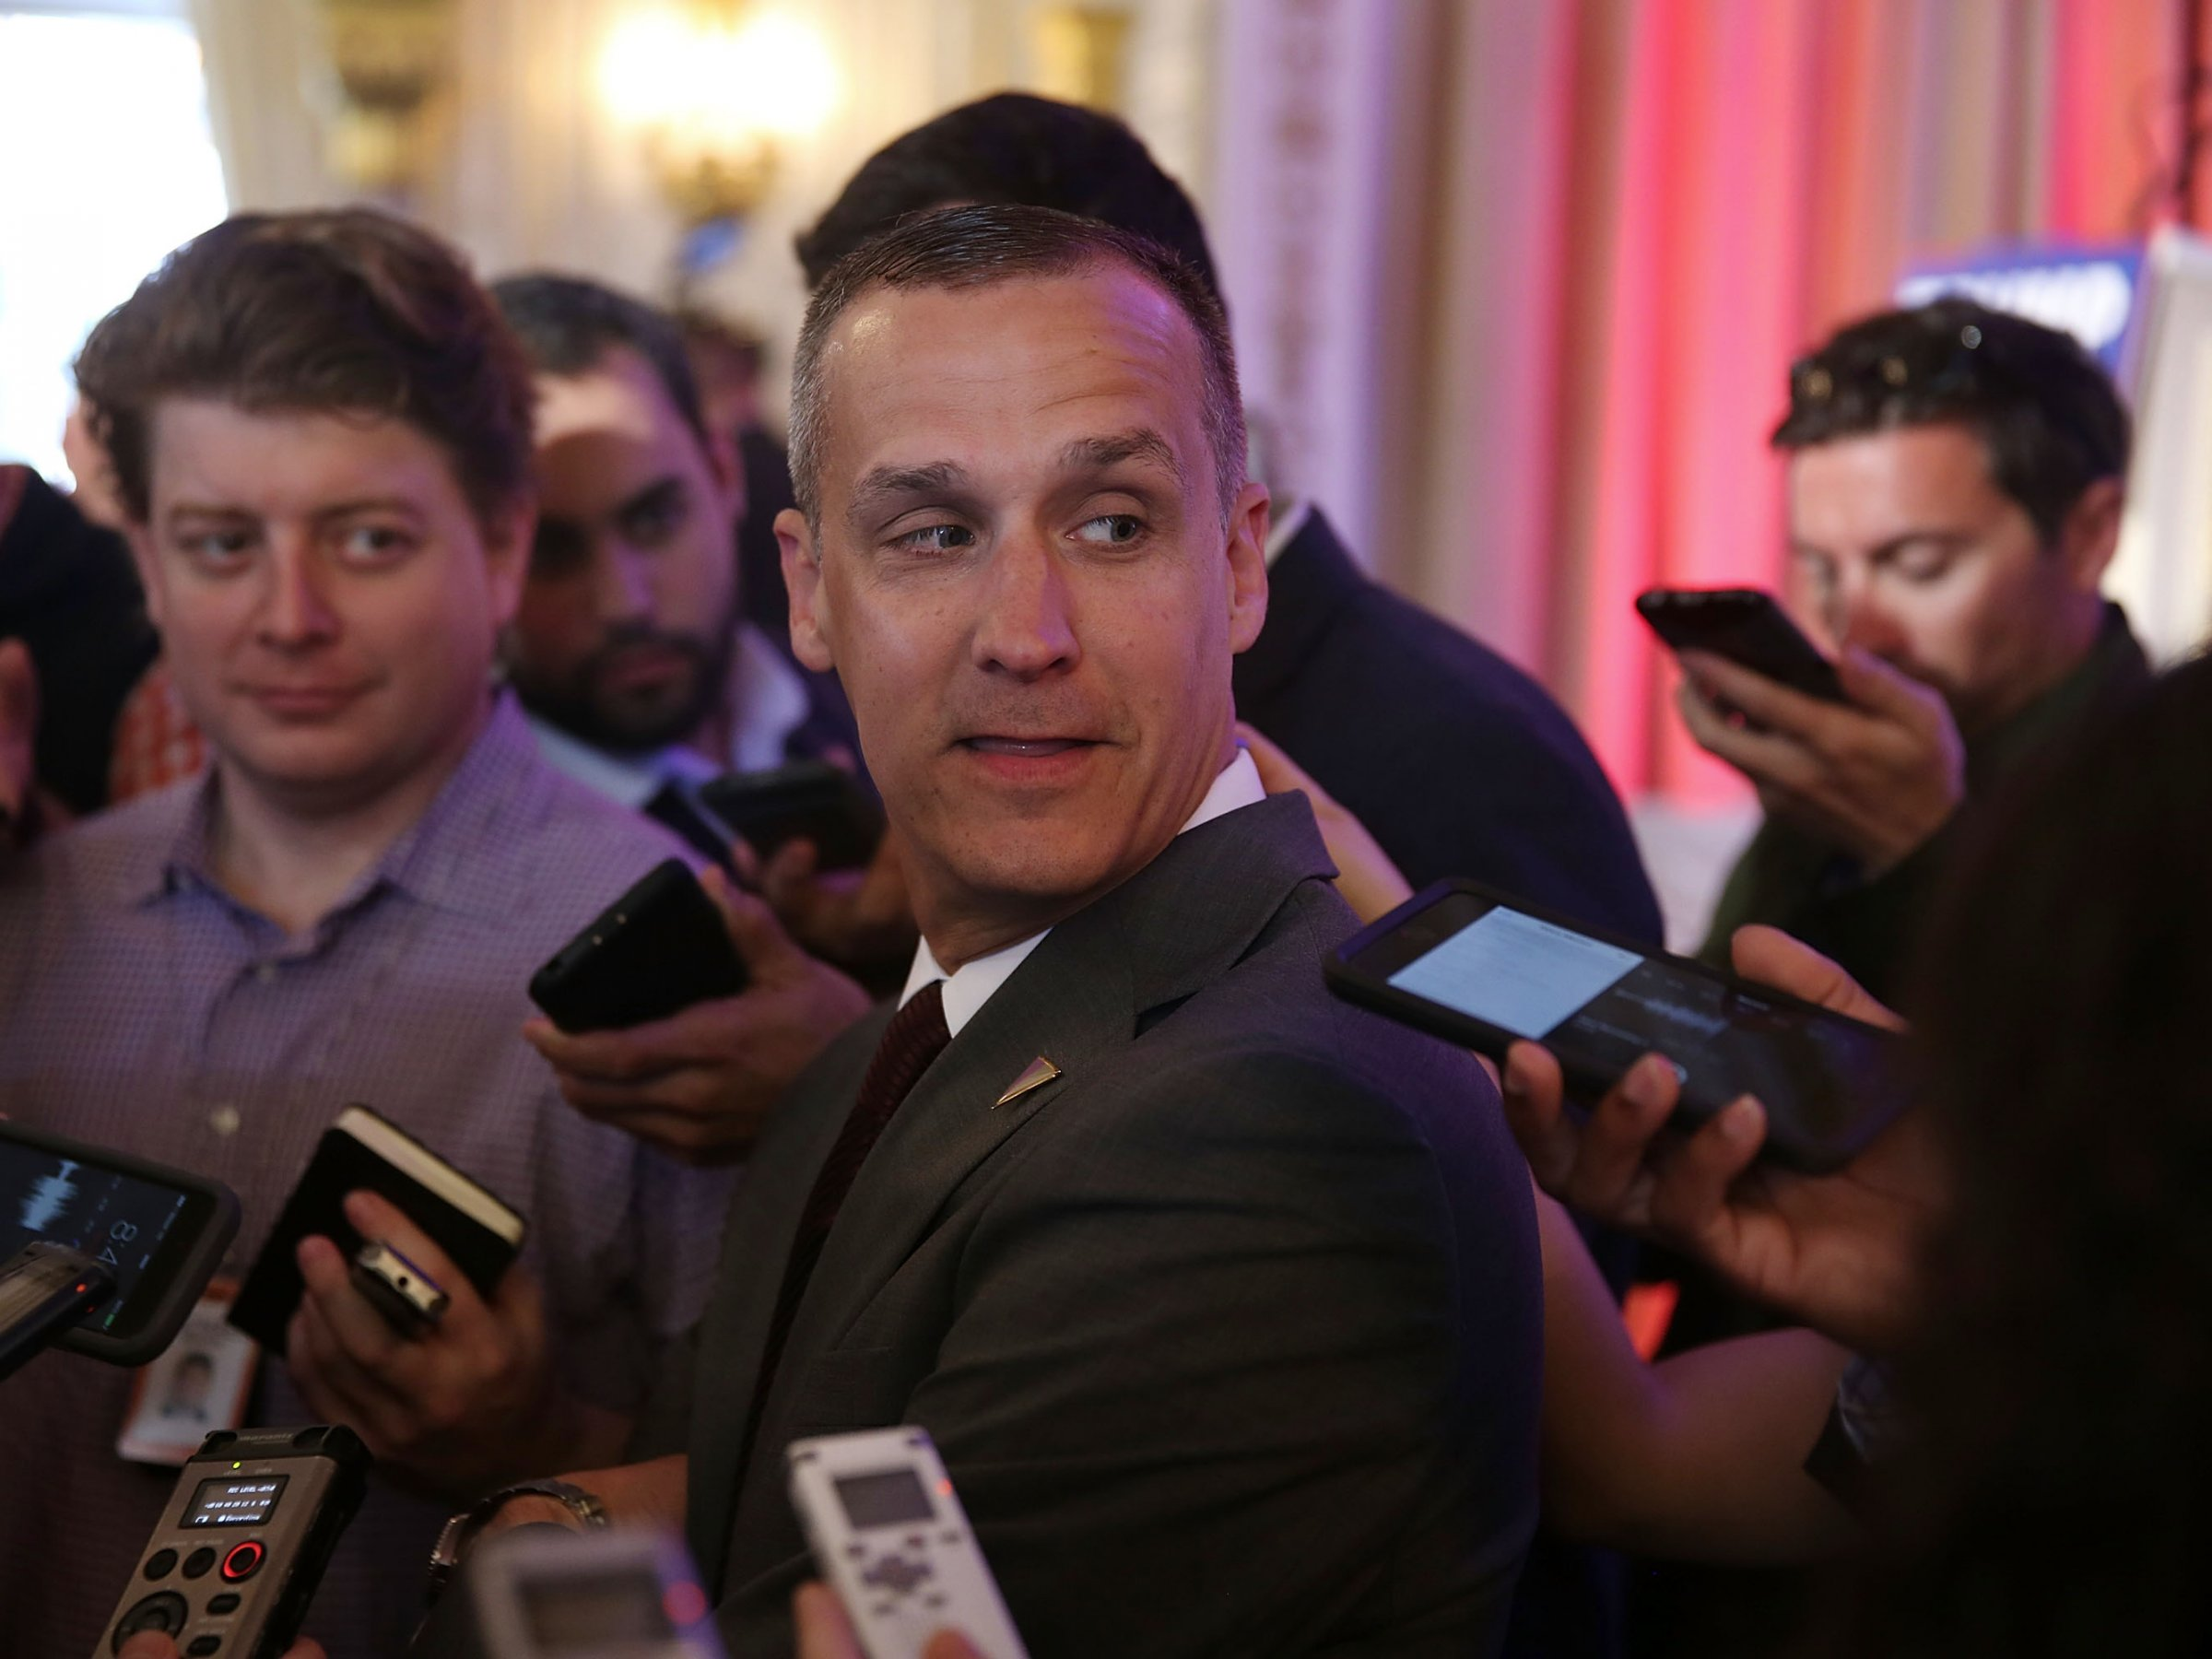 Donald Trump's campaign manager is out